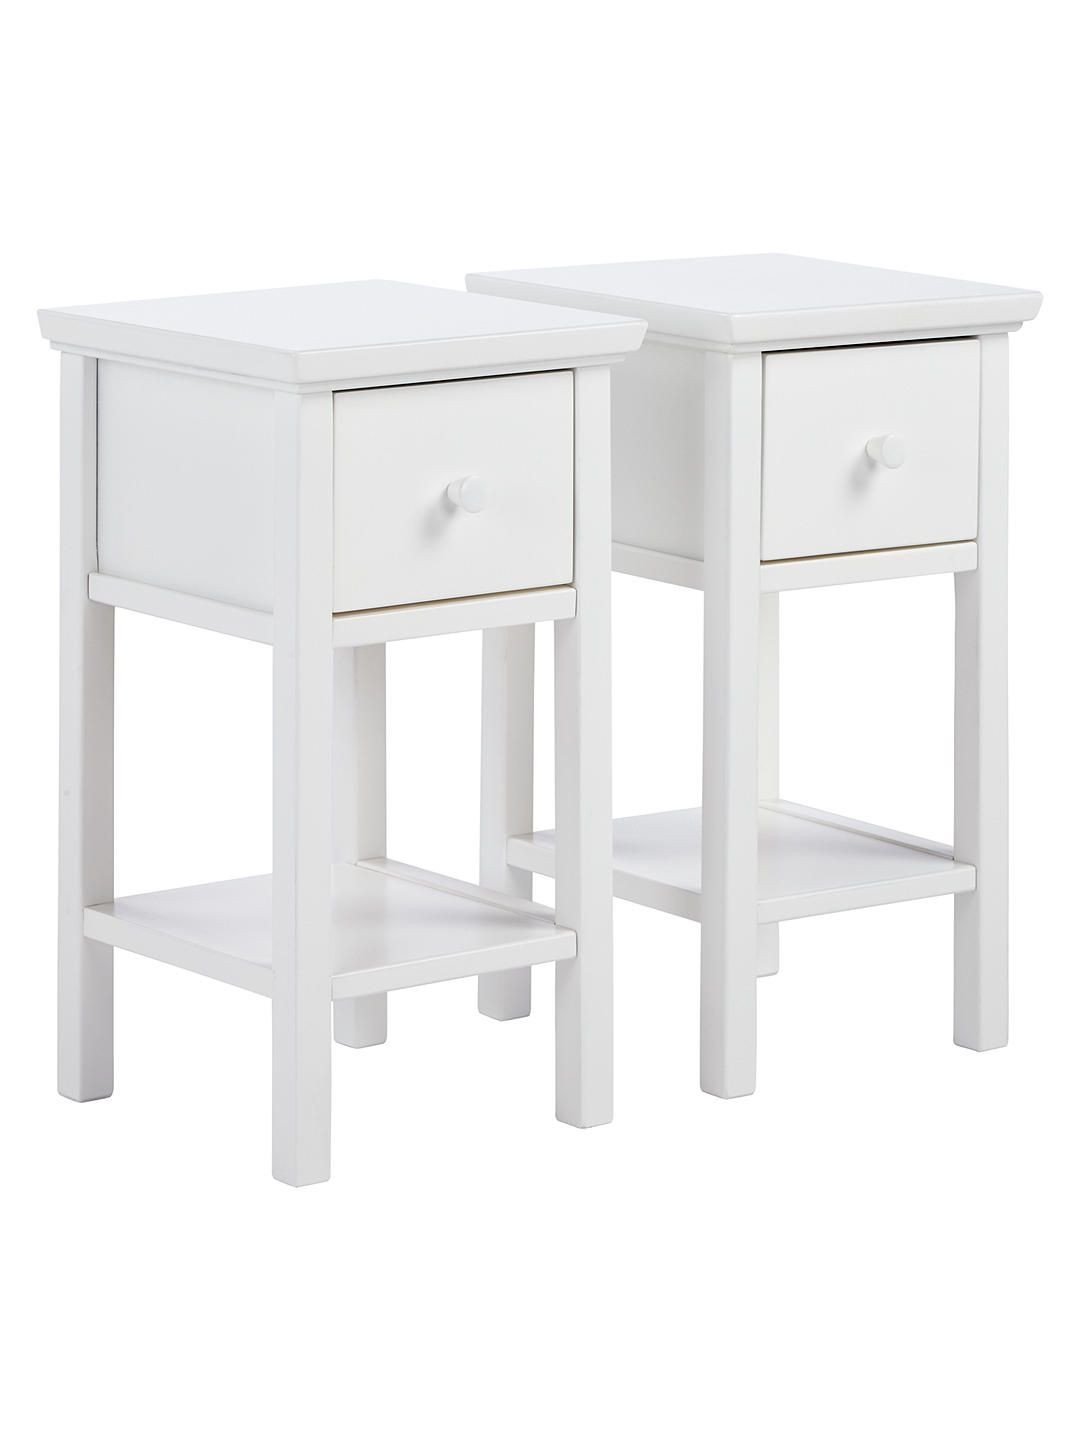 Black Bedroom Side Table Awesome John Lewis & Partners Wilton Set Of 2 Bedside Tables Grey